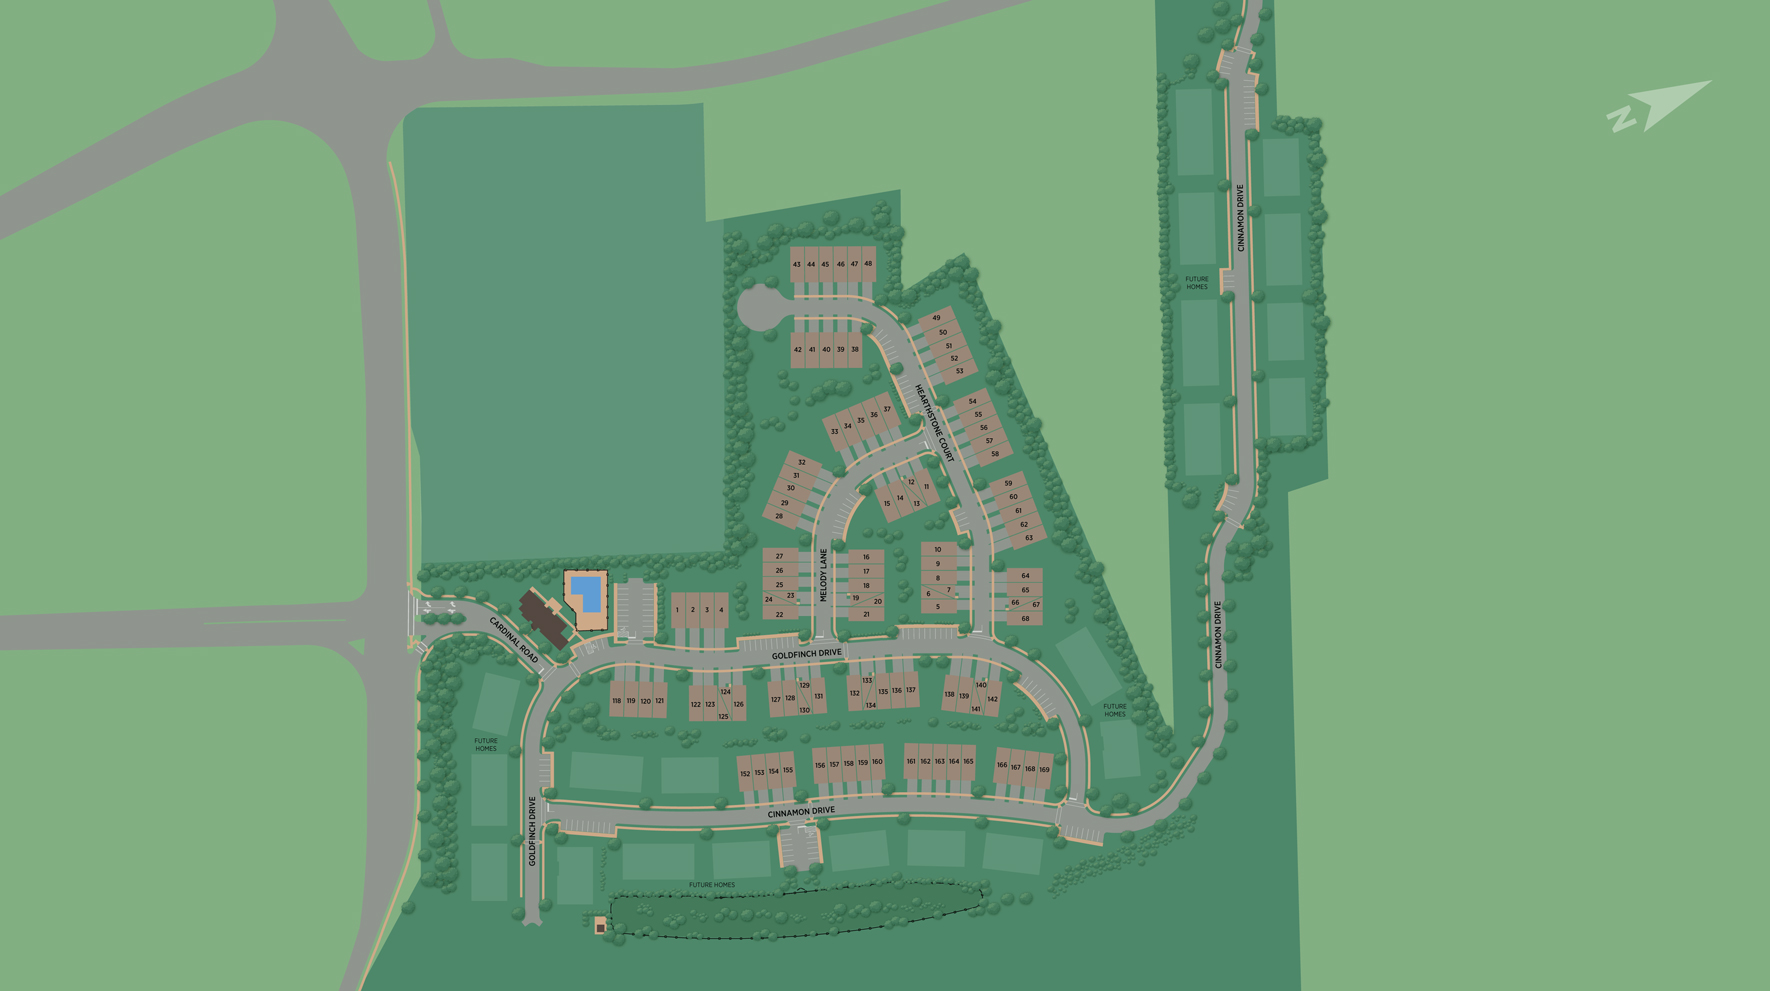 The Grove at Upper Saddle River Site Plan